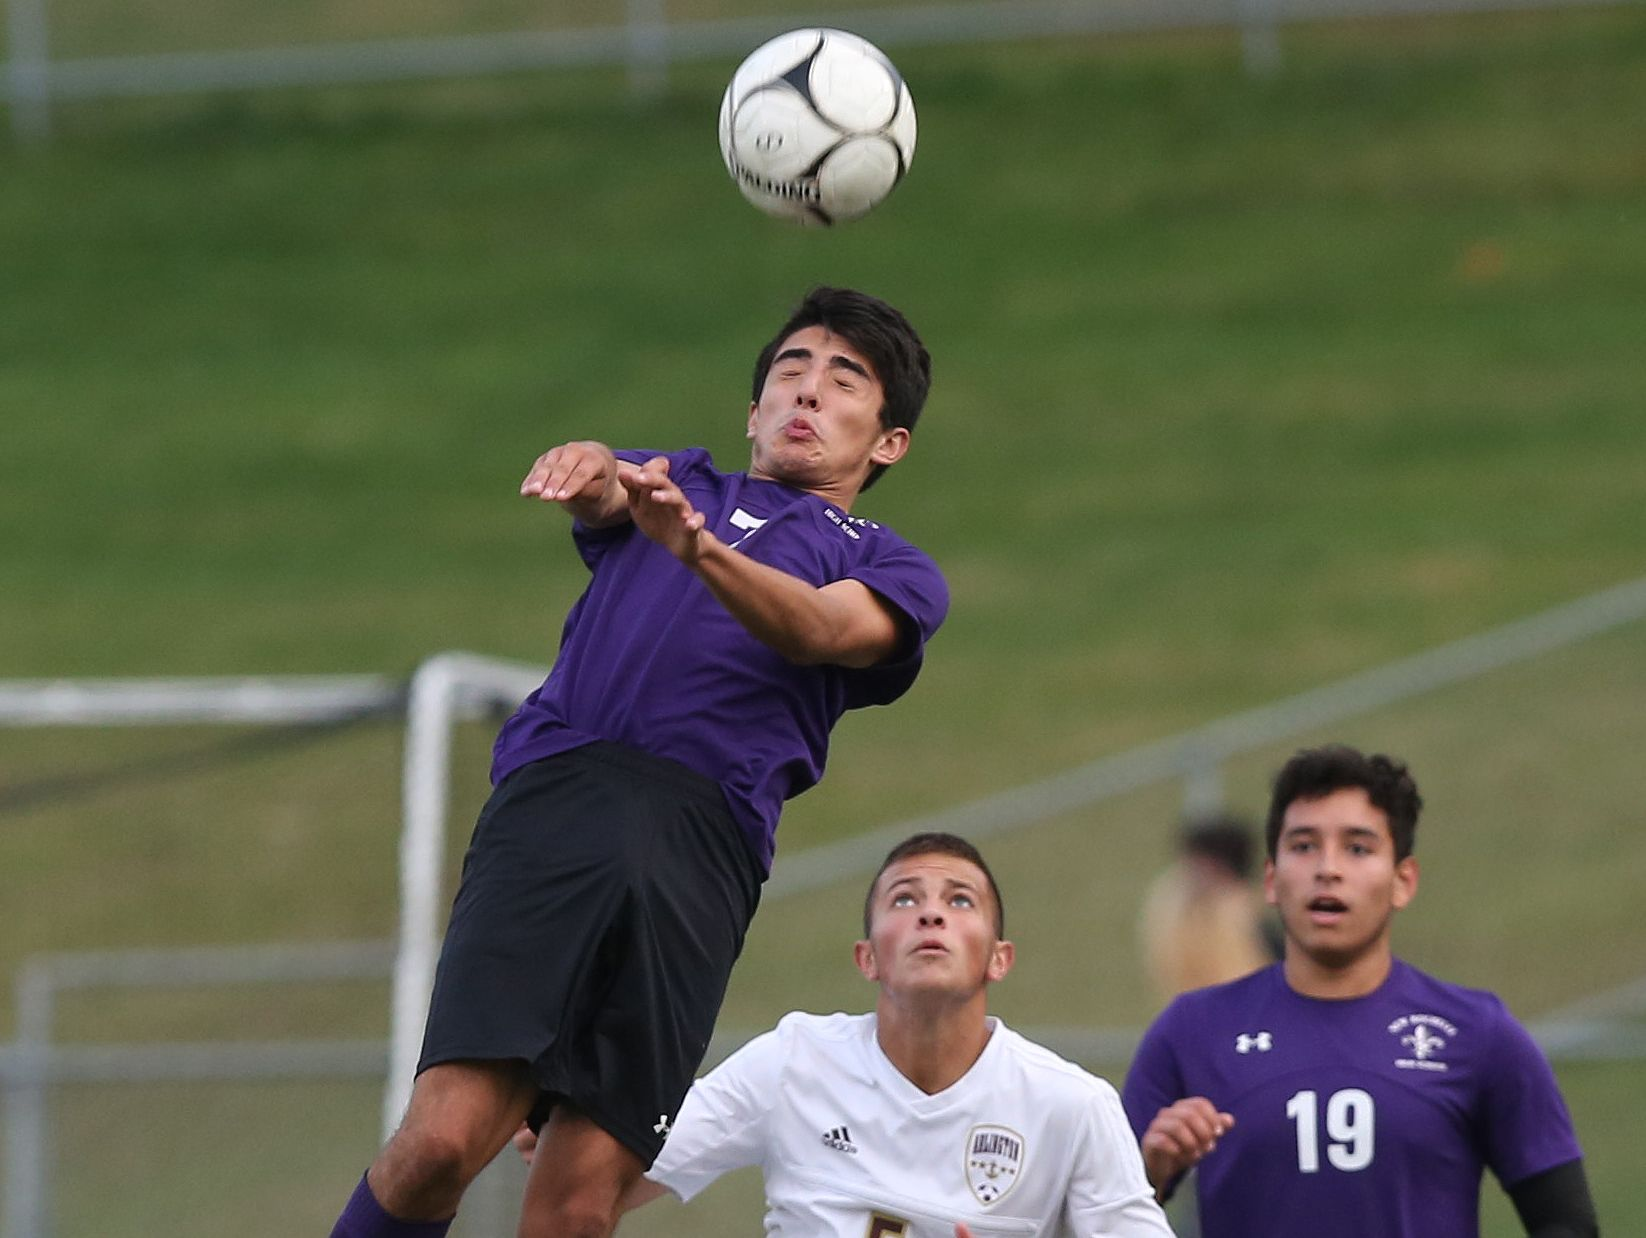 New Rochelle's Cristian Valencia (7) heads the ball away from Arlington's (5) during the boys soccer Section 1 Class AA championship game at Lakeland High School in Shrub Oak High School Oct. 29, 2016. Valencia had two goals in New Rochelle's 3-0 victory.